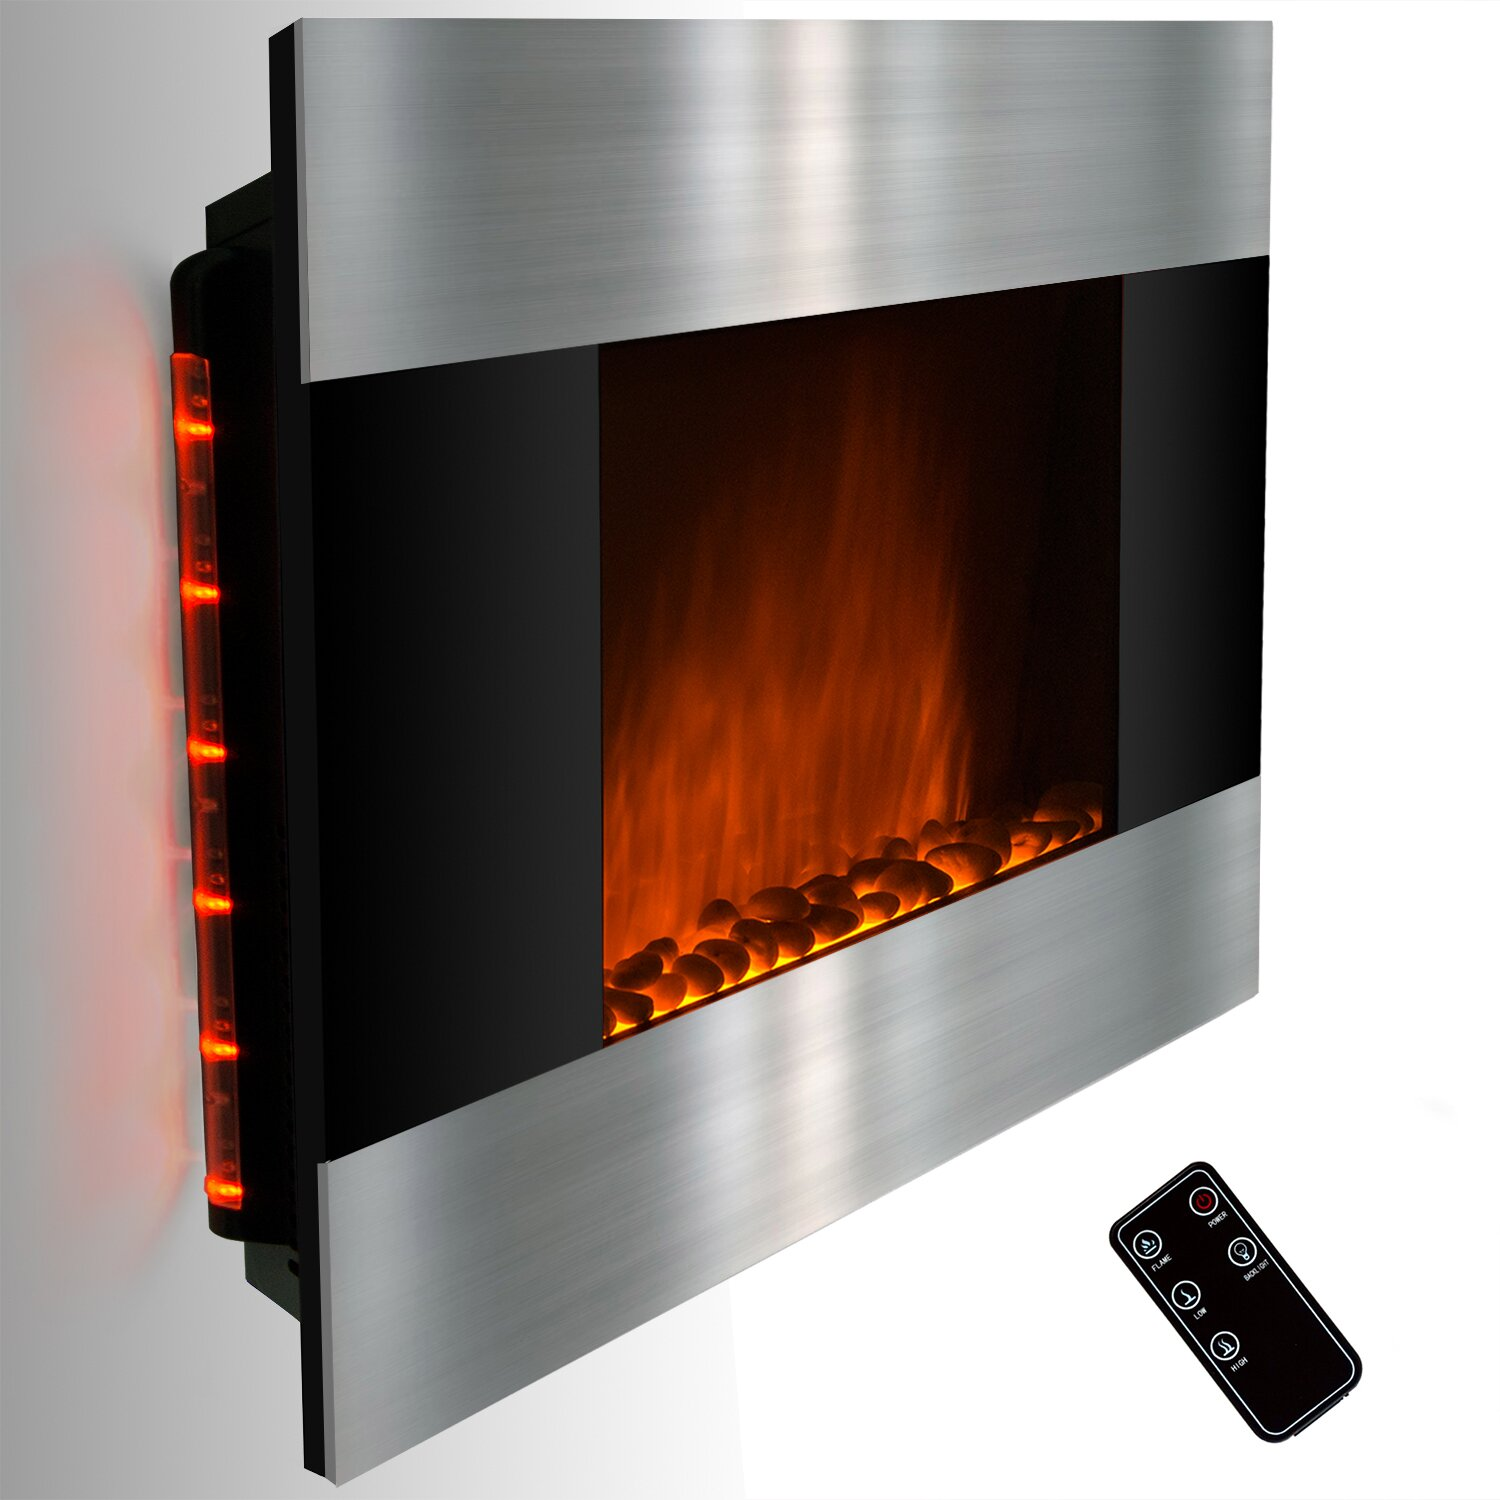 Goldenvantage Stainless Steel And Black Wall Mount Electric Fireplace Reviews Wayfair